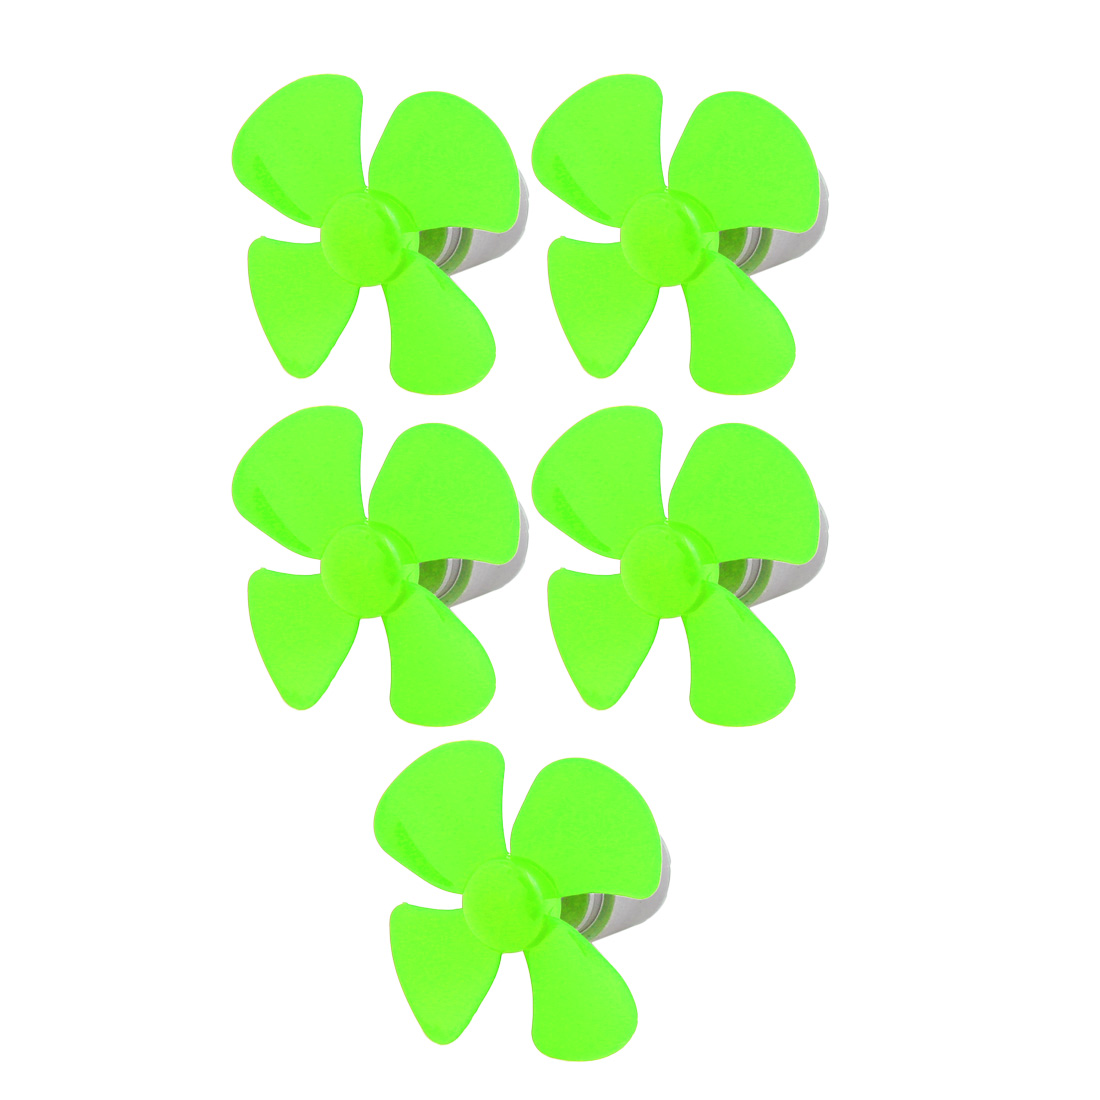 5pcs DC 3V 0.15A 11000RPM Green Strong Force Motor 4 Vanes 56mm Dia Propeller for RC Aircraft